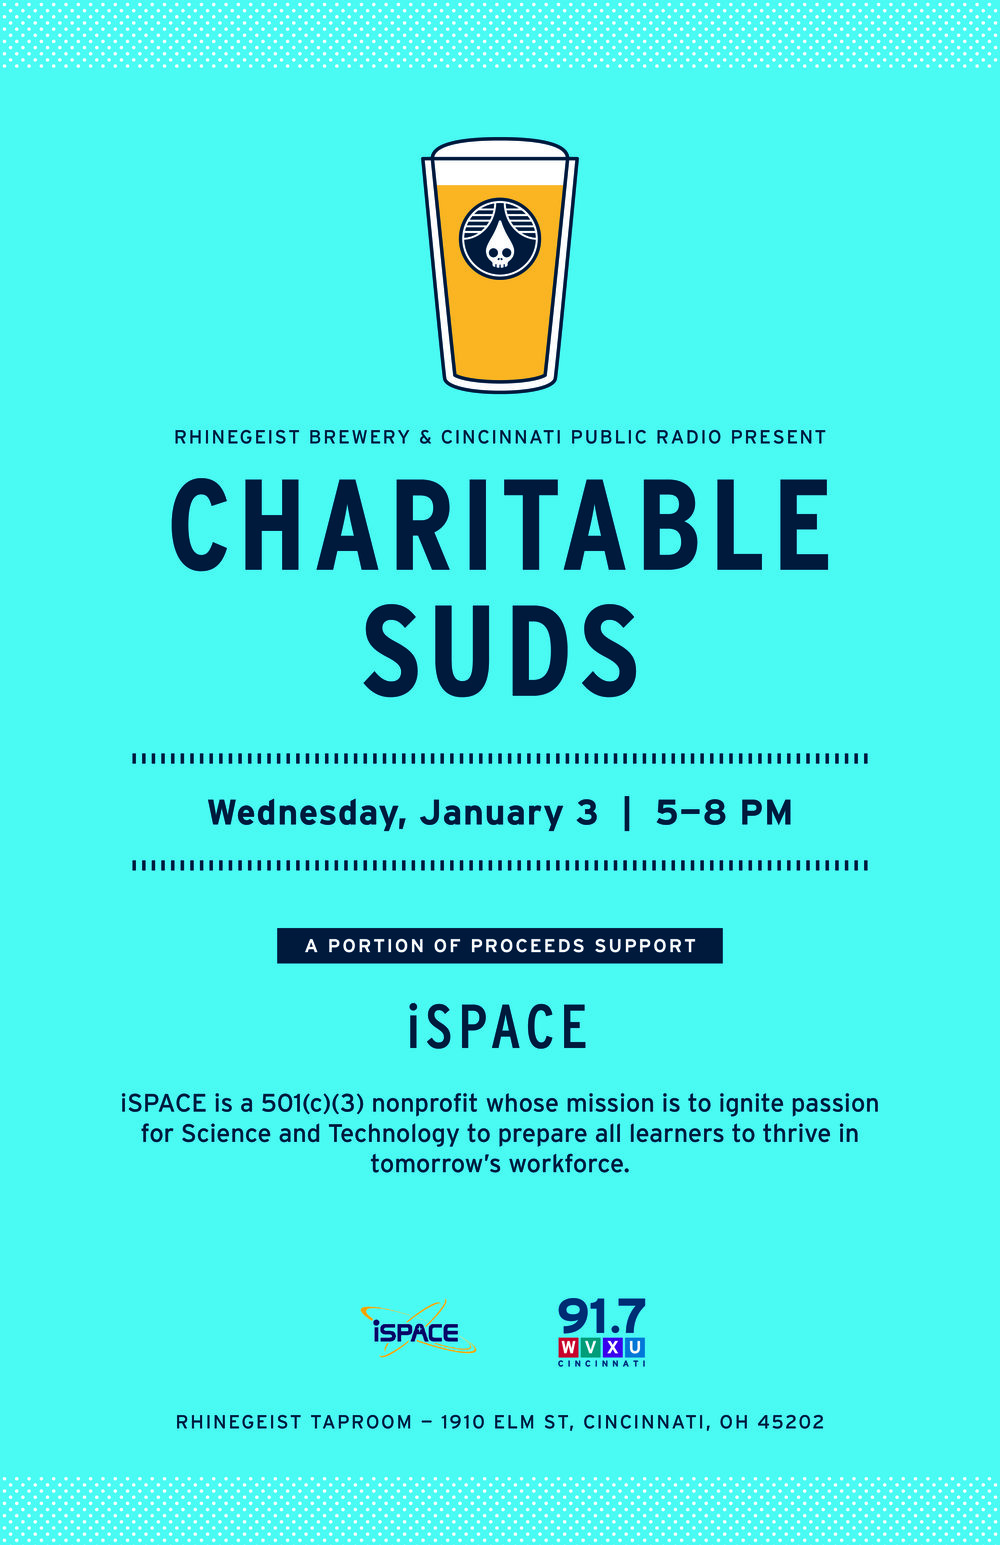 CharitableSuds_iSPACE_Poster-01.jpg